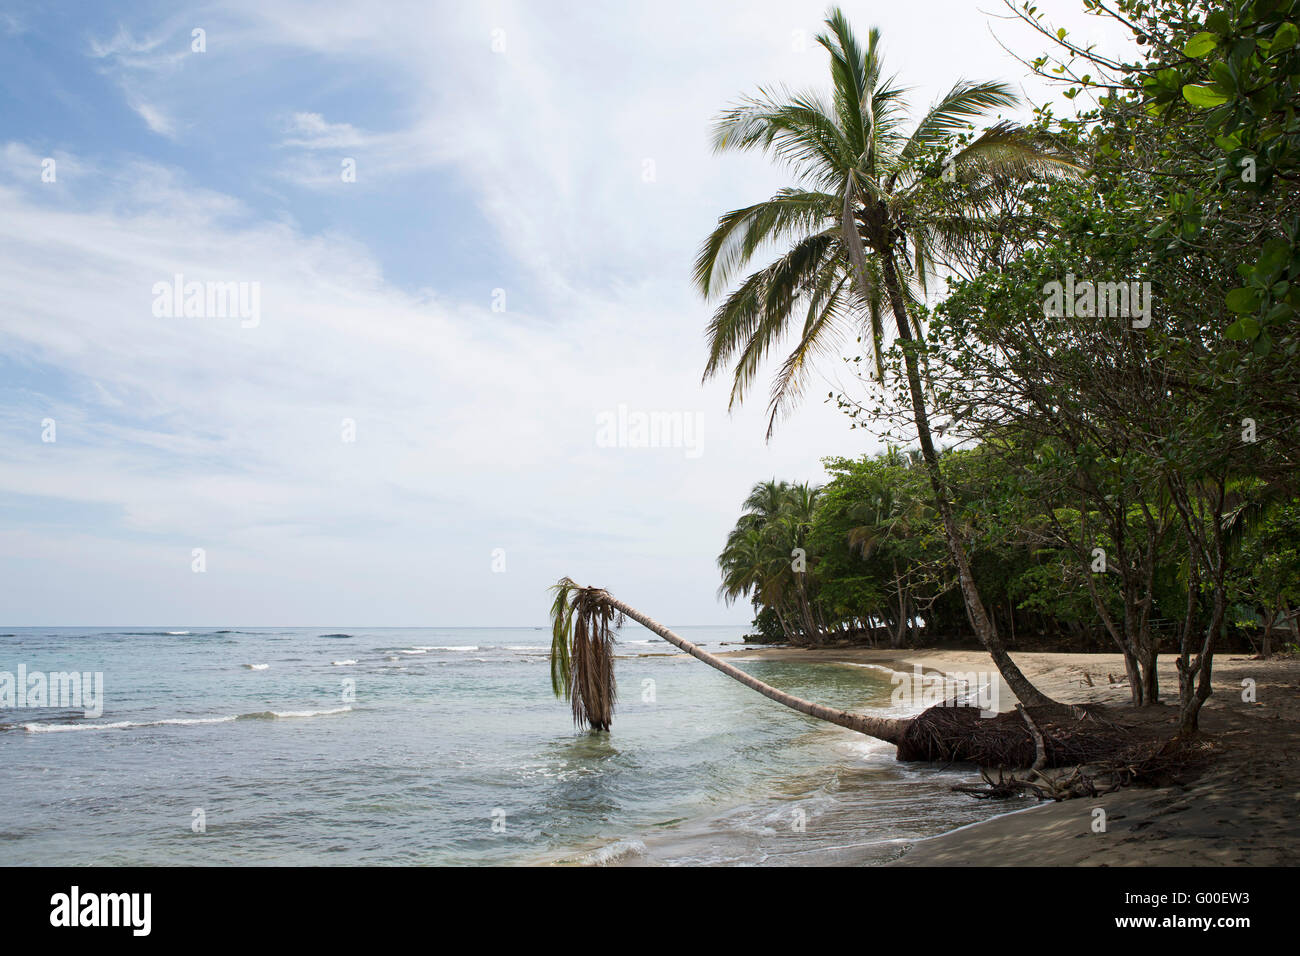 A palm tree leans over the beach and the Caribbean Sea at Manzanillo Beach in Costa Rica. - Stock Image